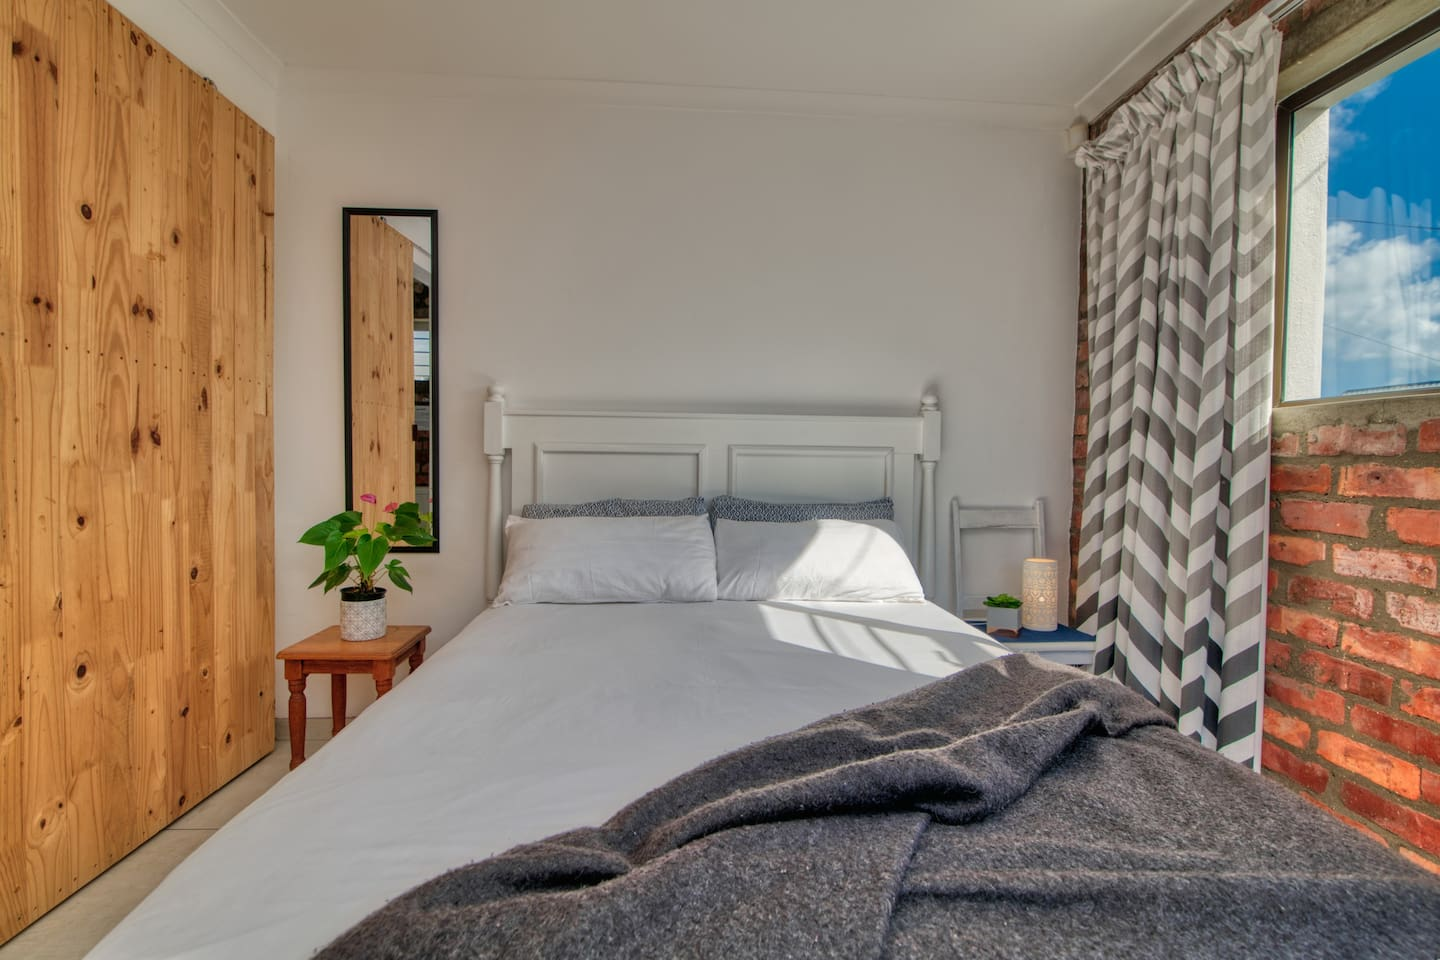 Double bed covered with luxurious bedding. Including a mohair blanket to keep you warm during the coldest nights